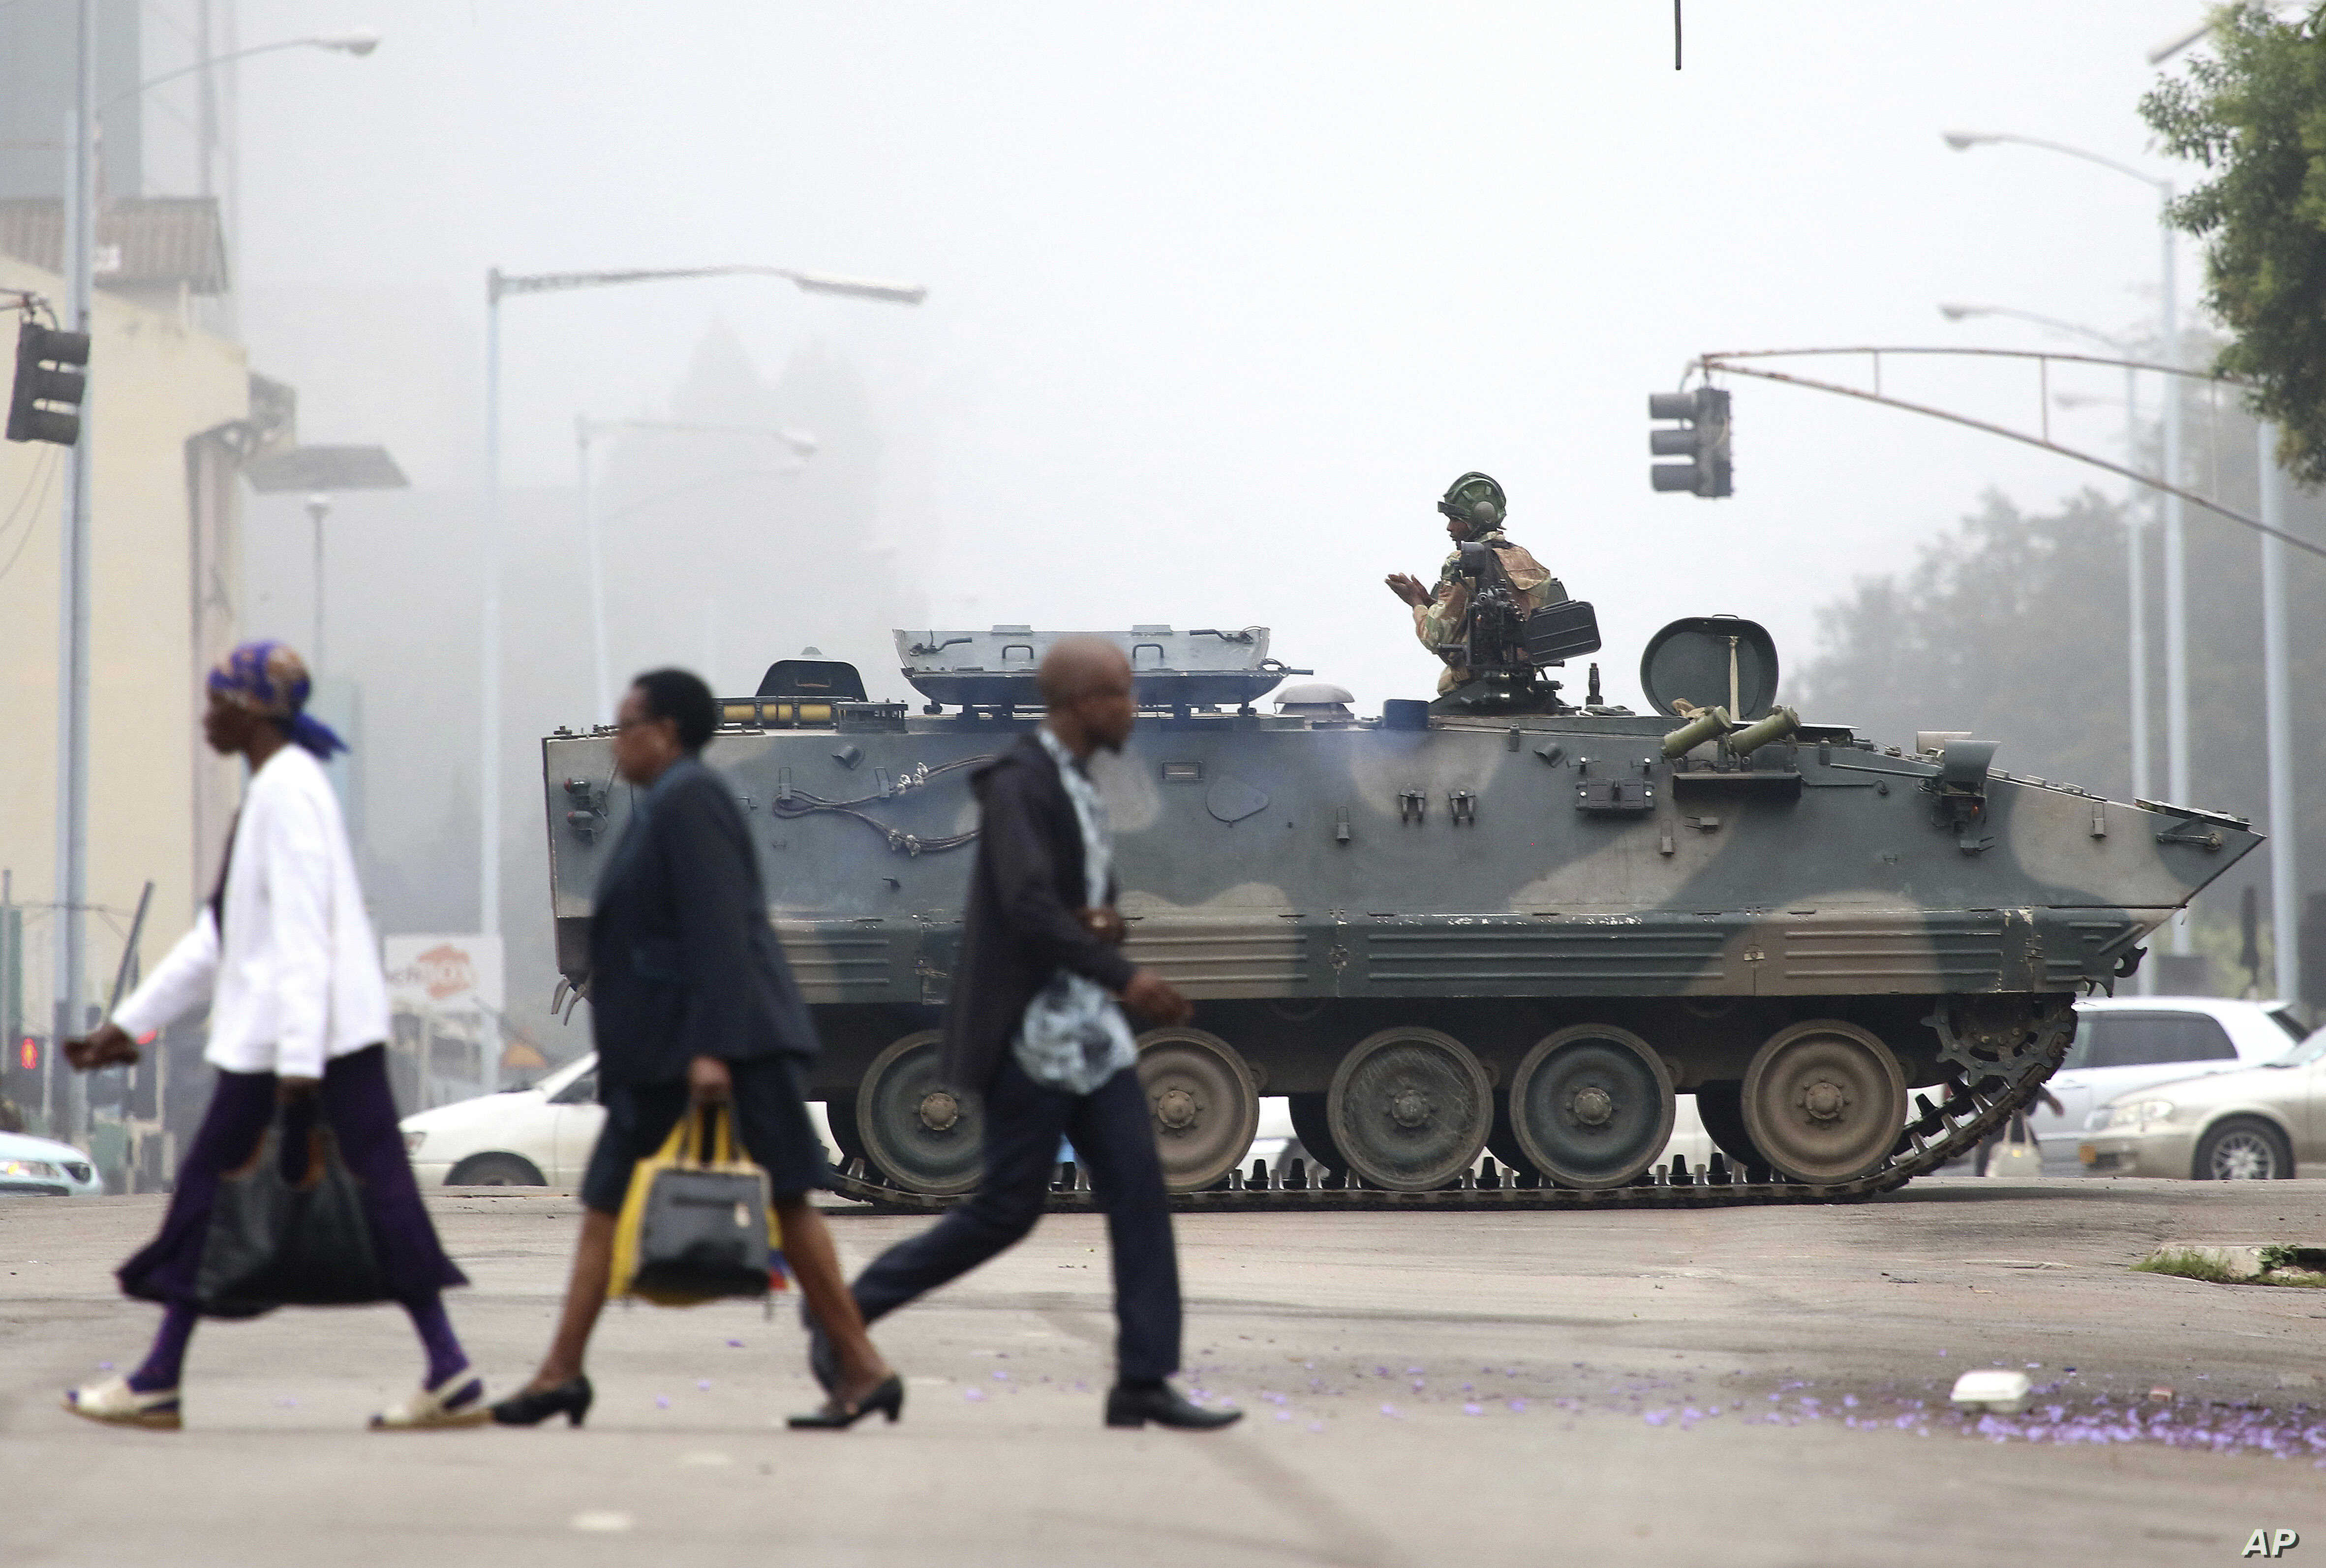 An armed soldier patrols a street in Harare, Zimbabwe, Nov. 15, 2017. Zimbabwe's army was securing government offices and patrolling the capital's streets following a night of unrest that included a military takeover of the state broadcaster.